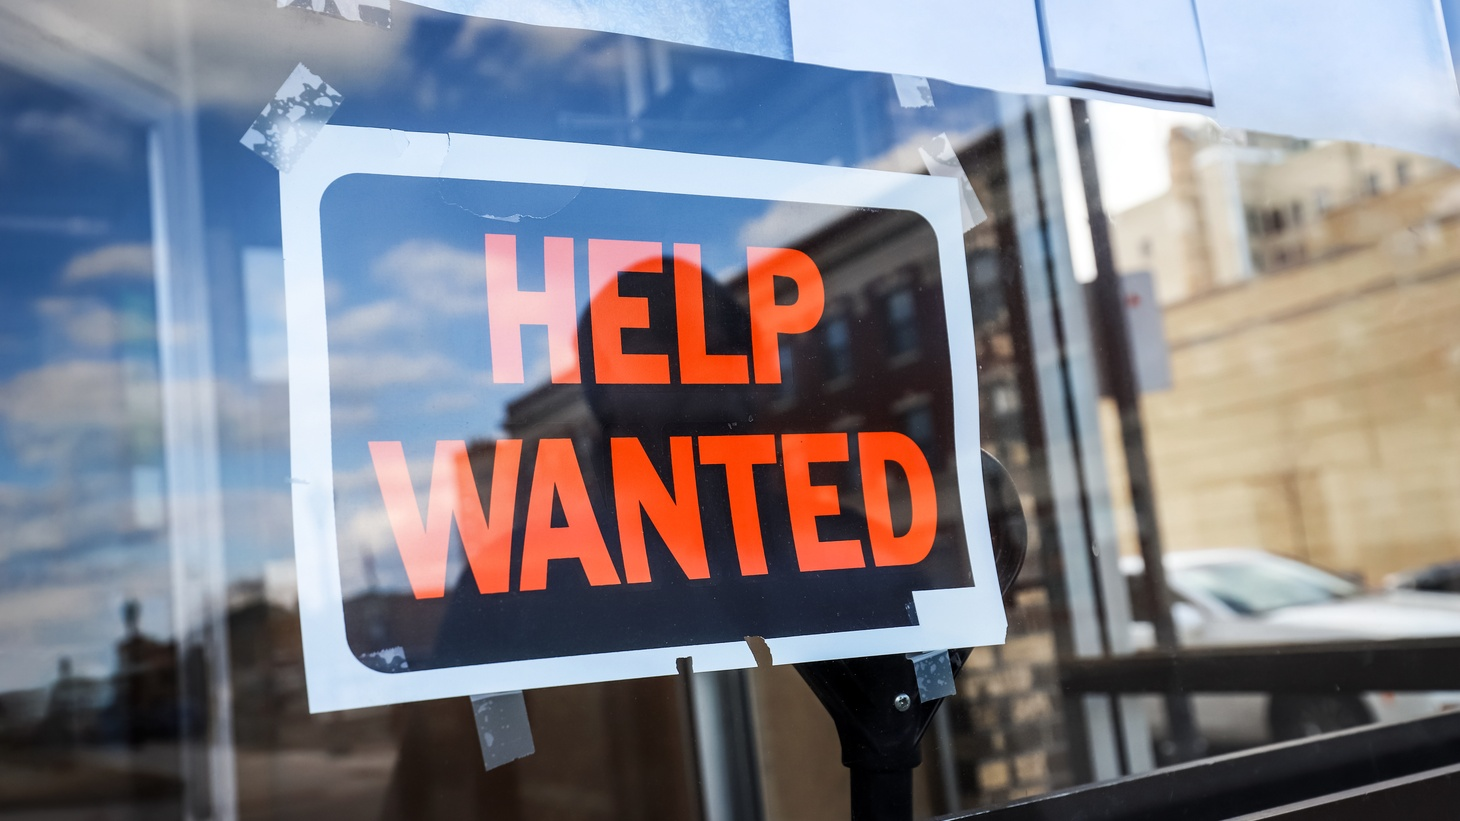 Nationwide, employers are struggling to find workers, despite millions of people still being jobless due to the pandemic.